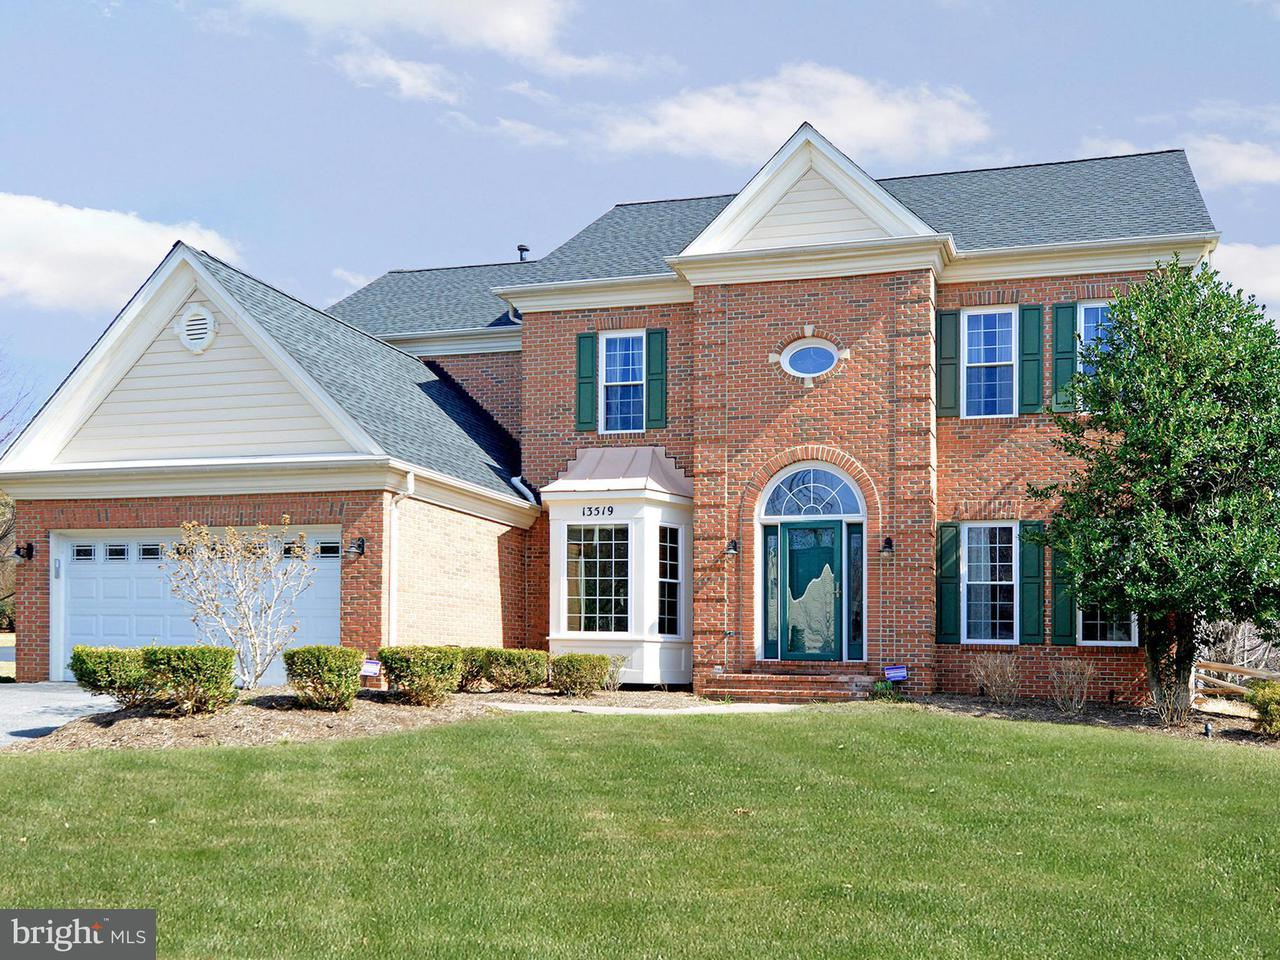 Casa Unifamiliar por un Venta en 13519 SANDERLING Place 13519 SANDERLING Place Germantown, Maryland 20874 Estados Unidos